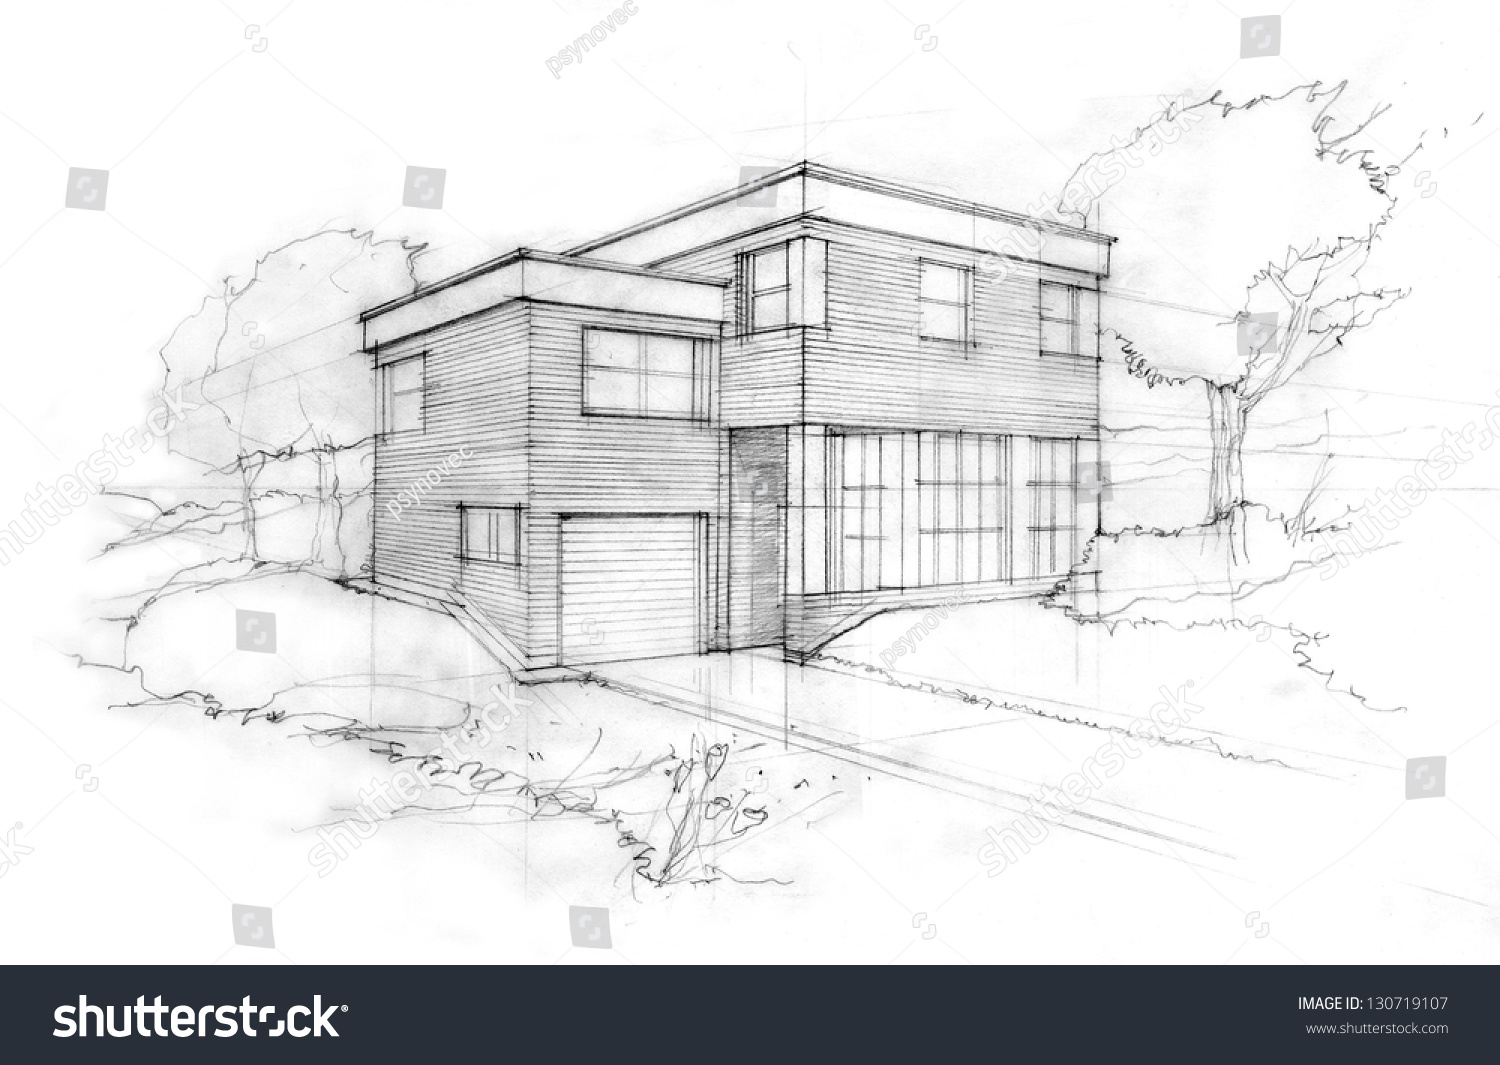 Sketch Modern ubic House First Idea Stock Illustration 130719107 ... - ^